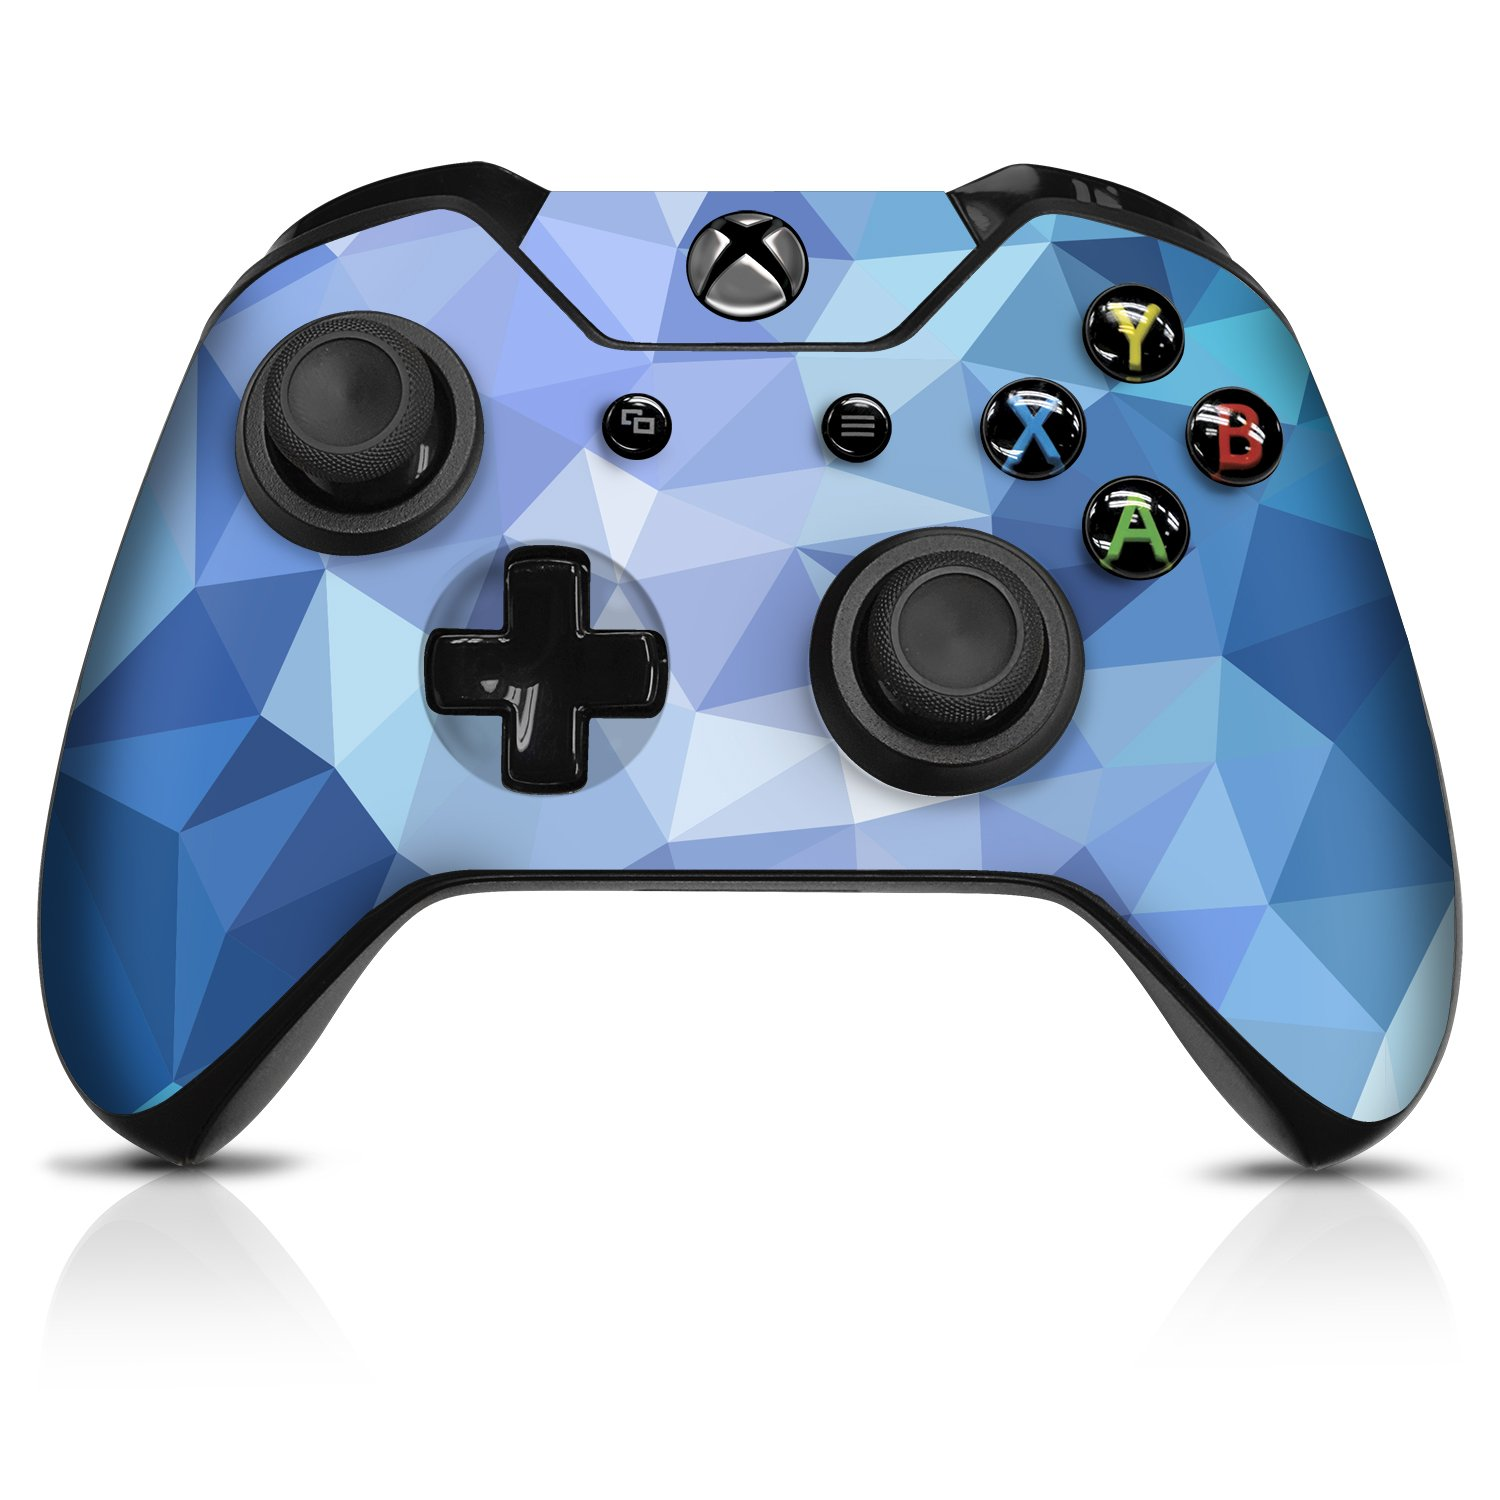 Amazon price history for Controller Gear Controller Skin - Blue Poly - Officially Licensed by Xbox One